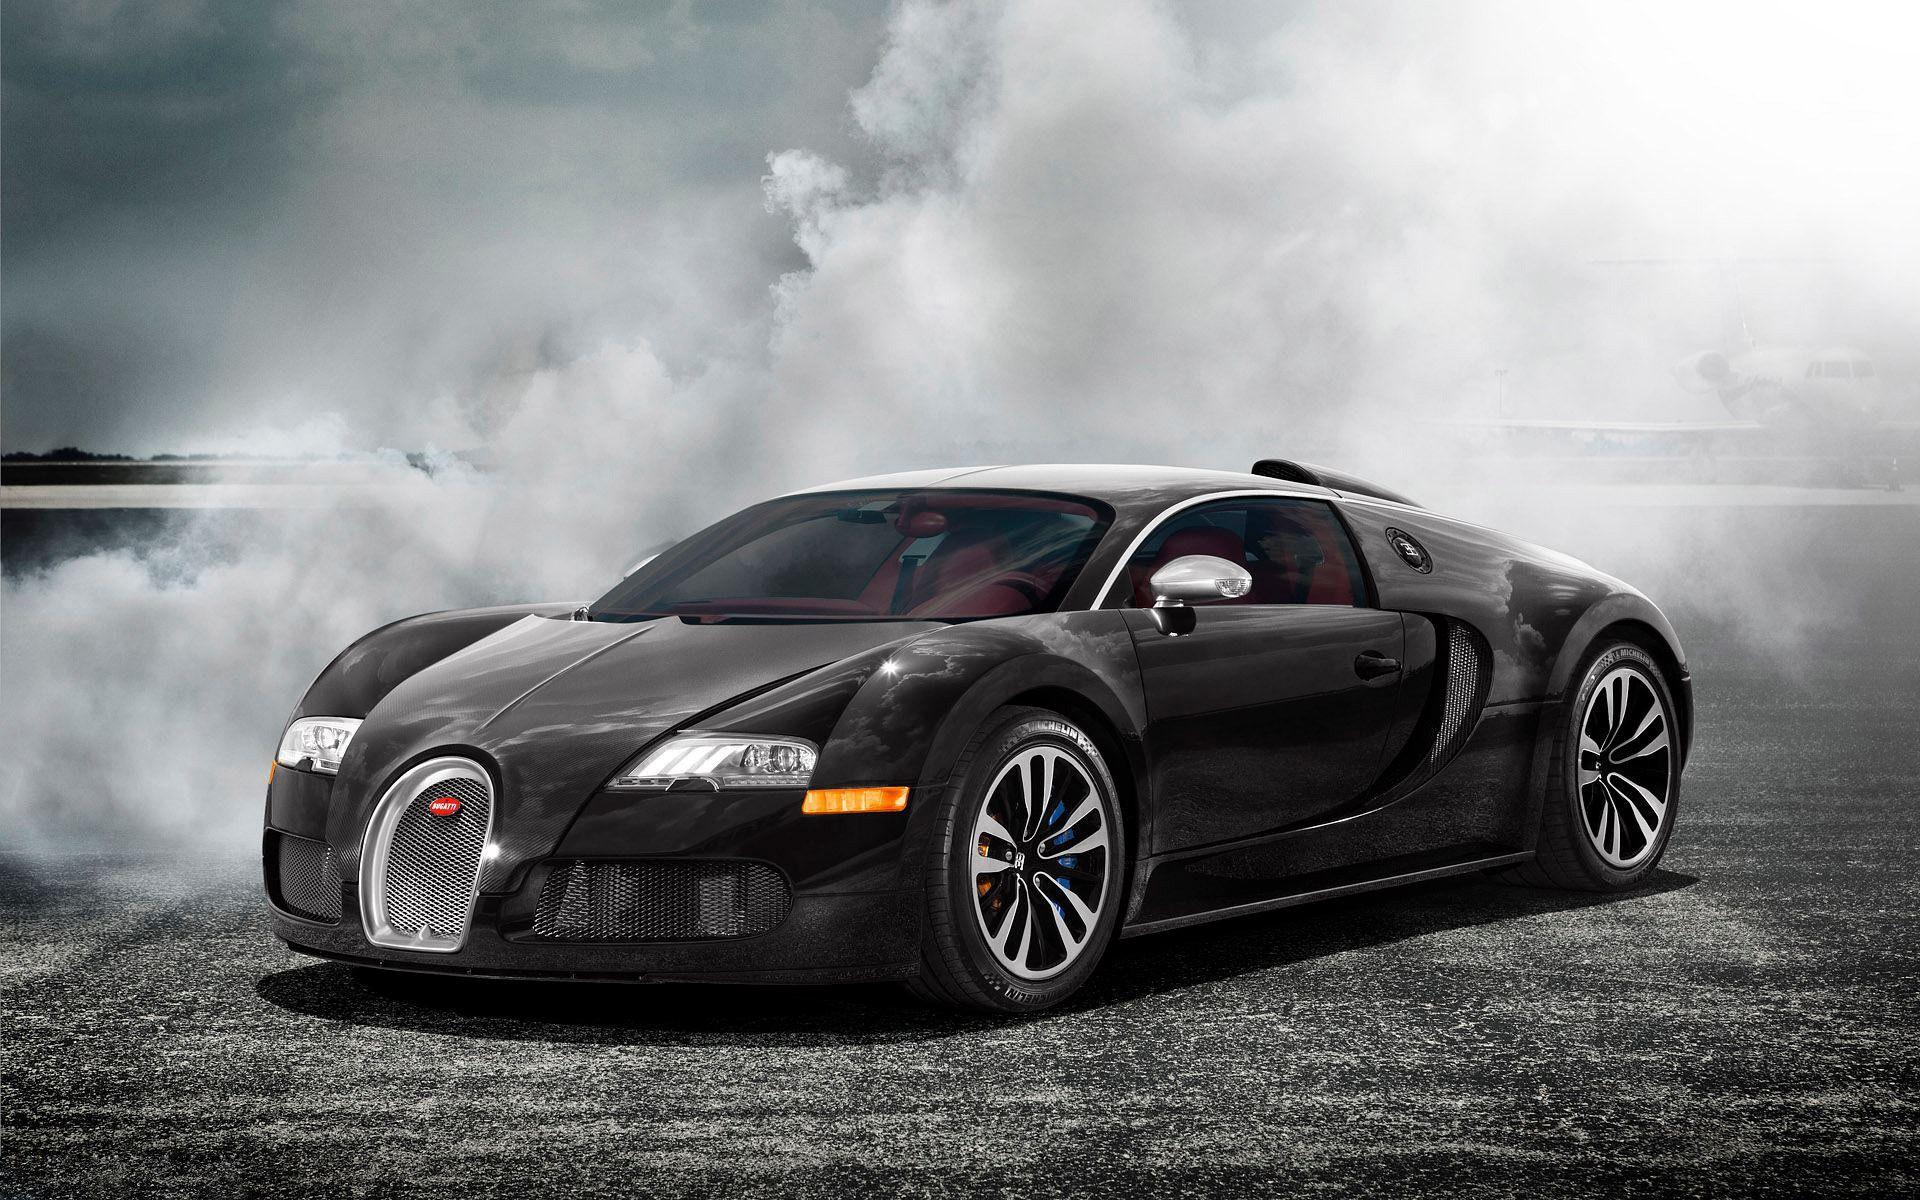 Bugatti Computer Wallpapers, Desktop Backgrounds 1920x1200 Id: 243744